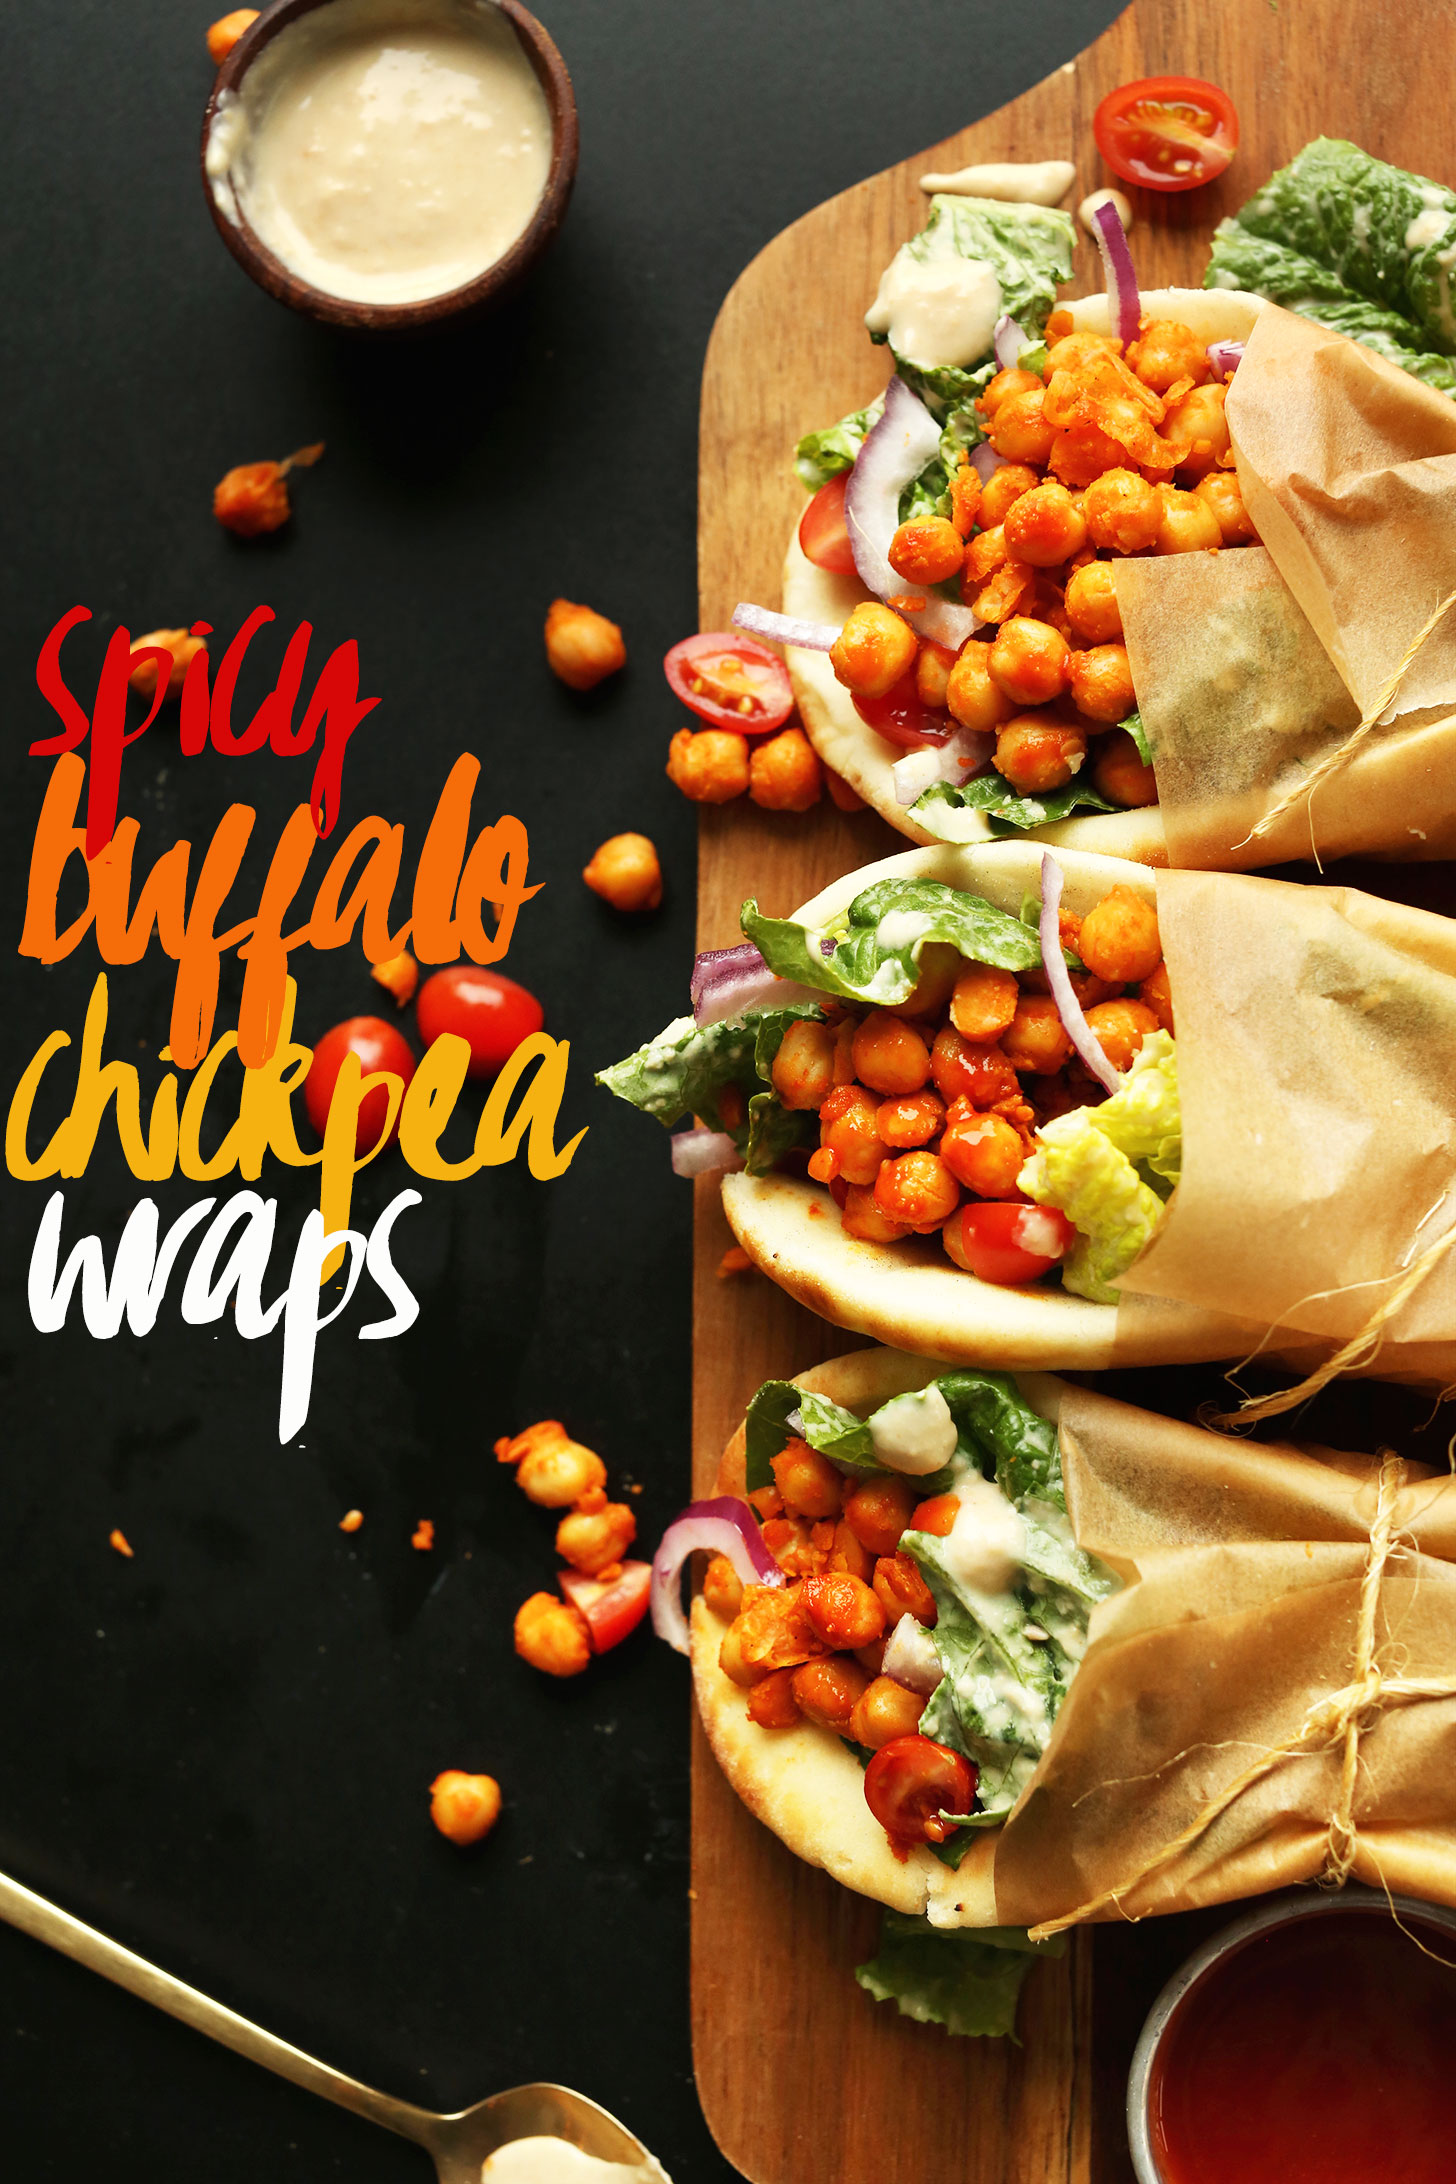 Rolled up vegan Buffalo Chickpea Wraps served on soft pita bread